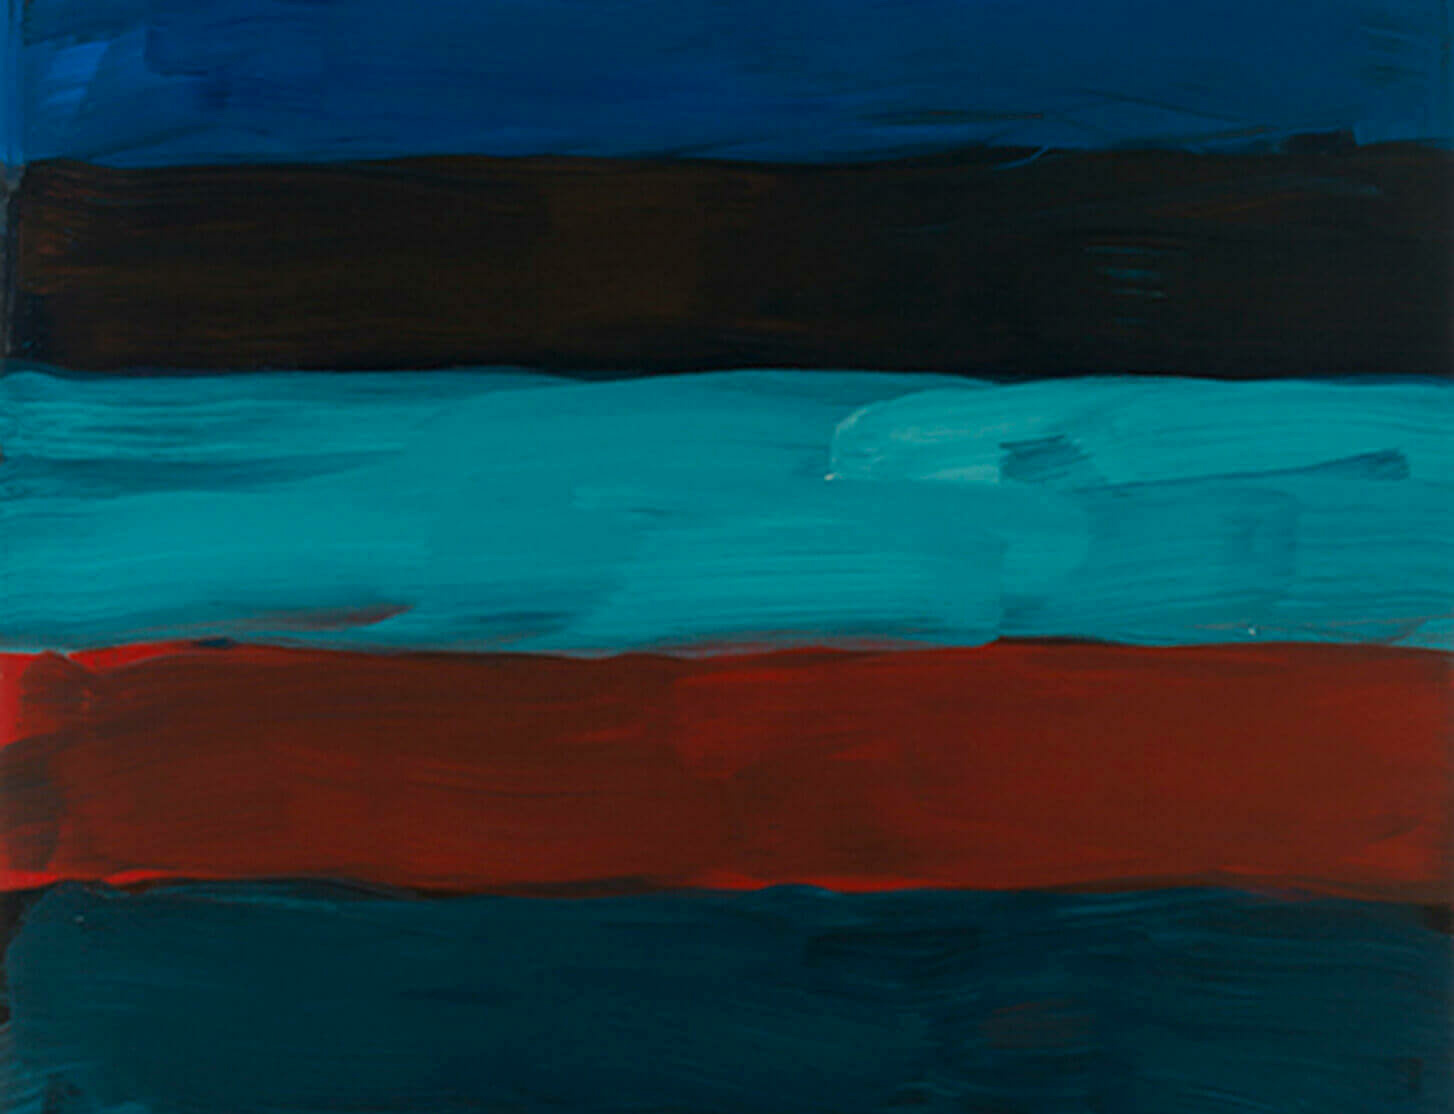 Sean Scully exhibition to open at Hungarian National Gallery's Museum of Fine Arts